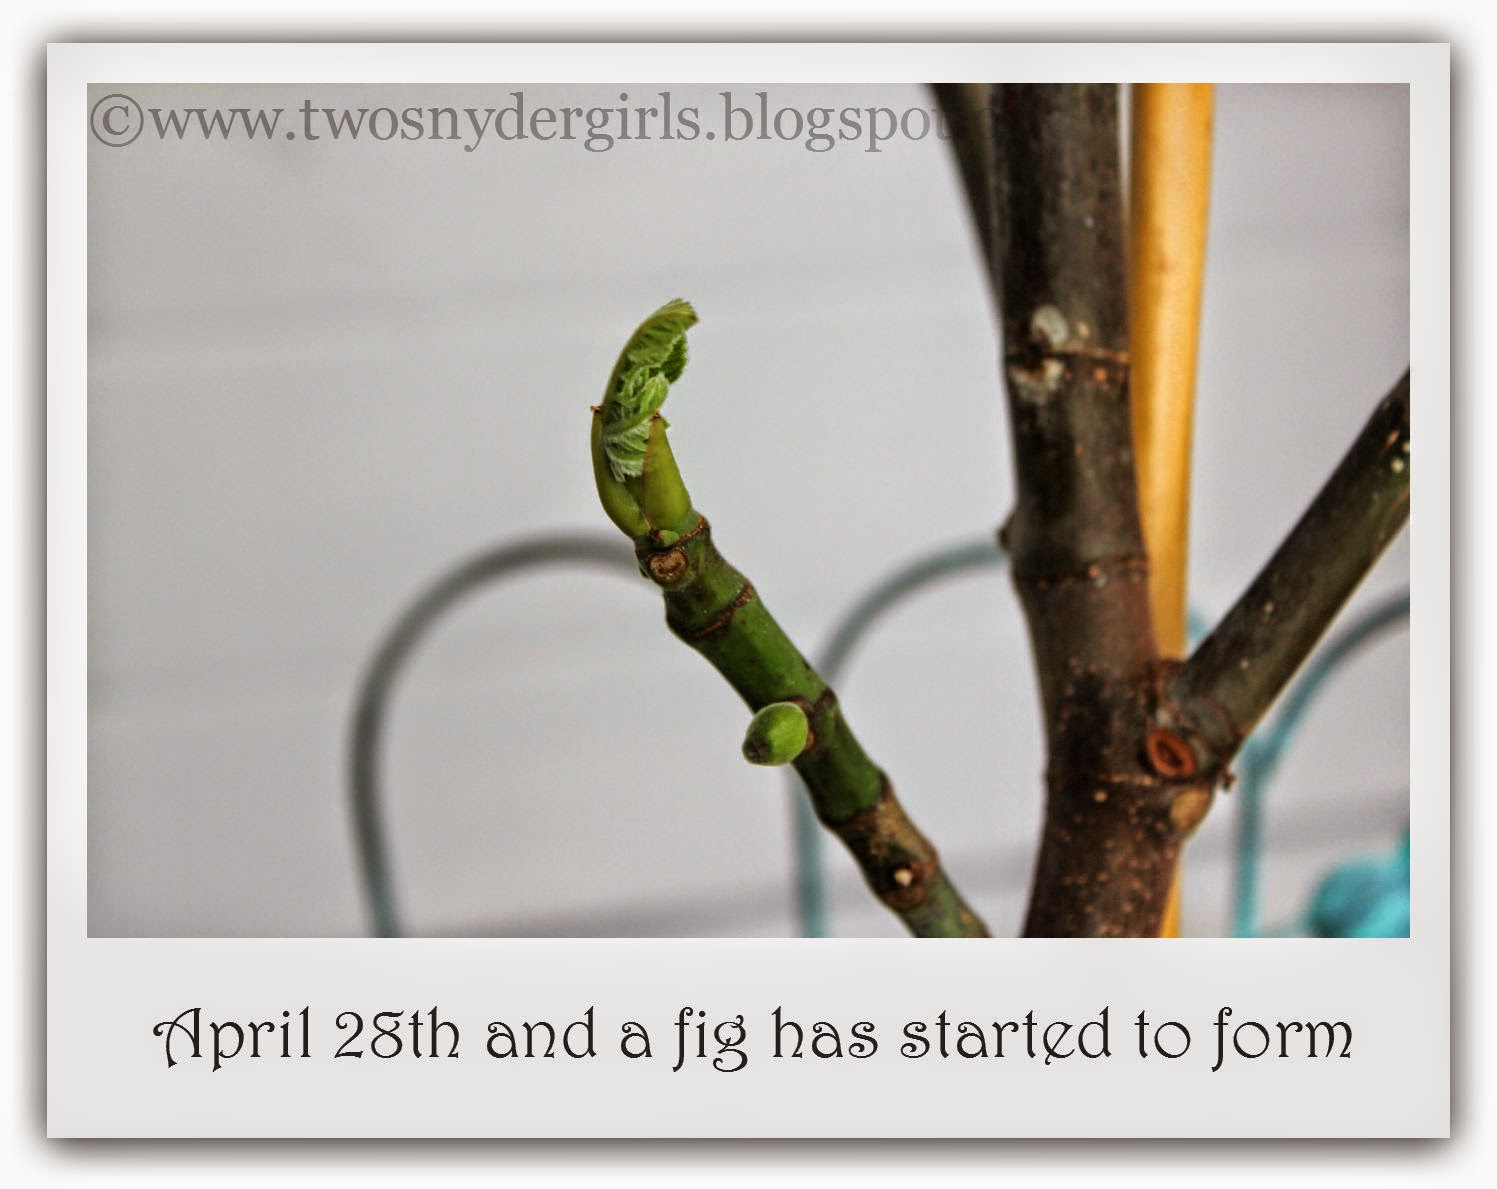 A new fig starting to grow